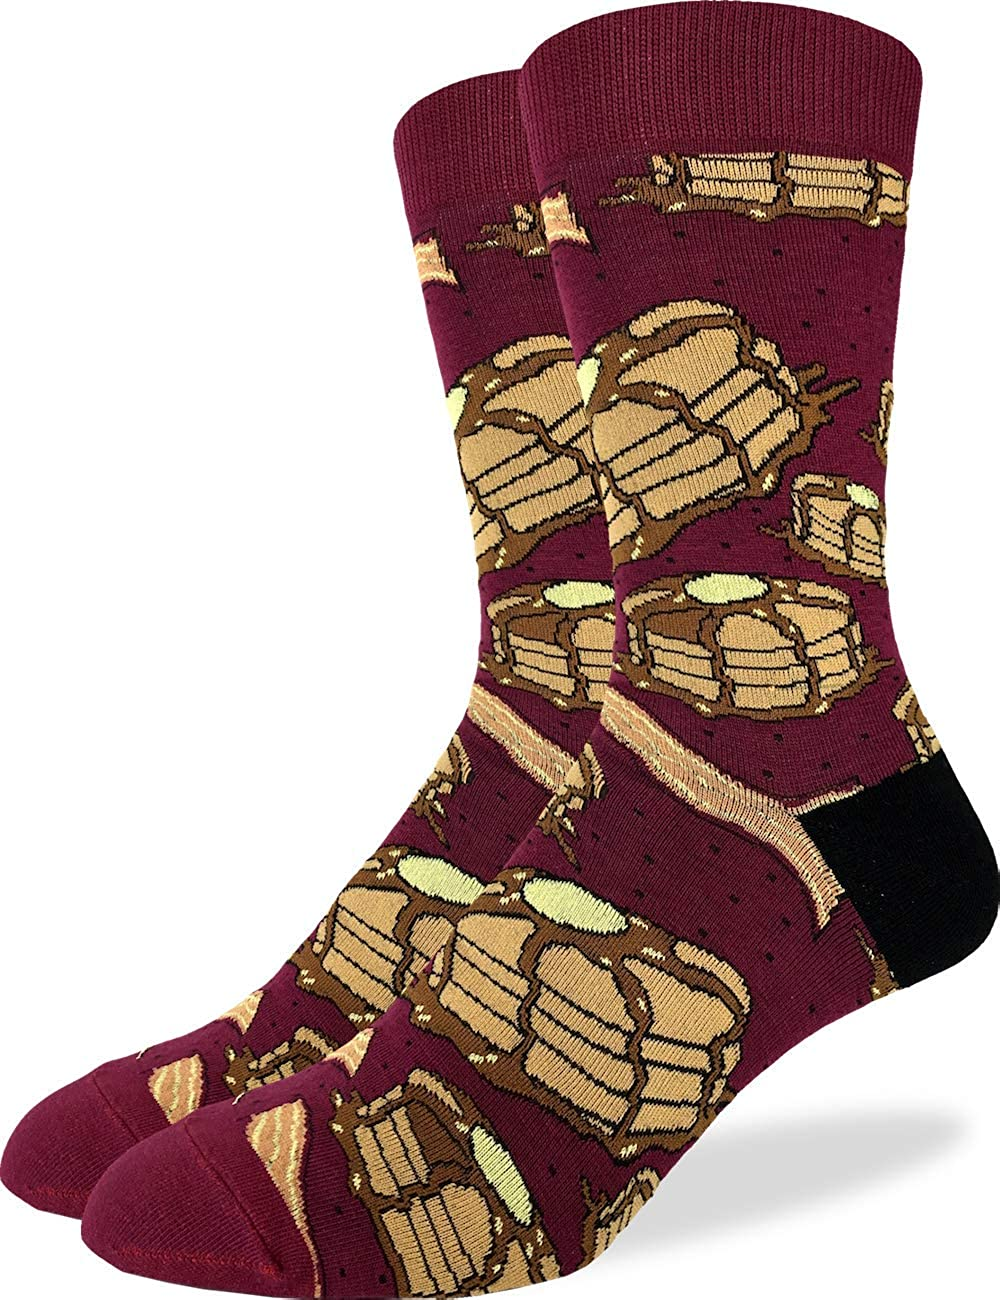 Good Luck Sock Men's Pancakes with Bacon Socks - Red, Adult Shoe Size 7-12 1394